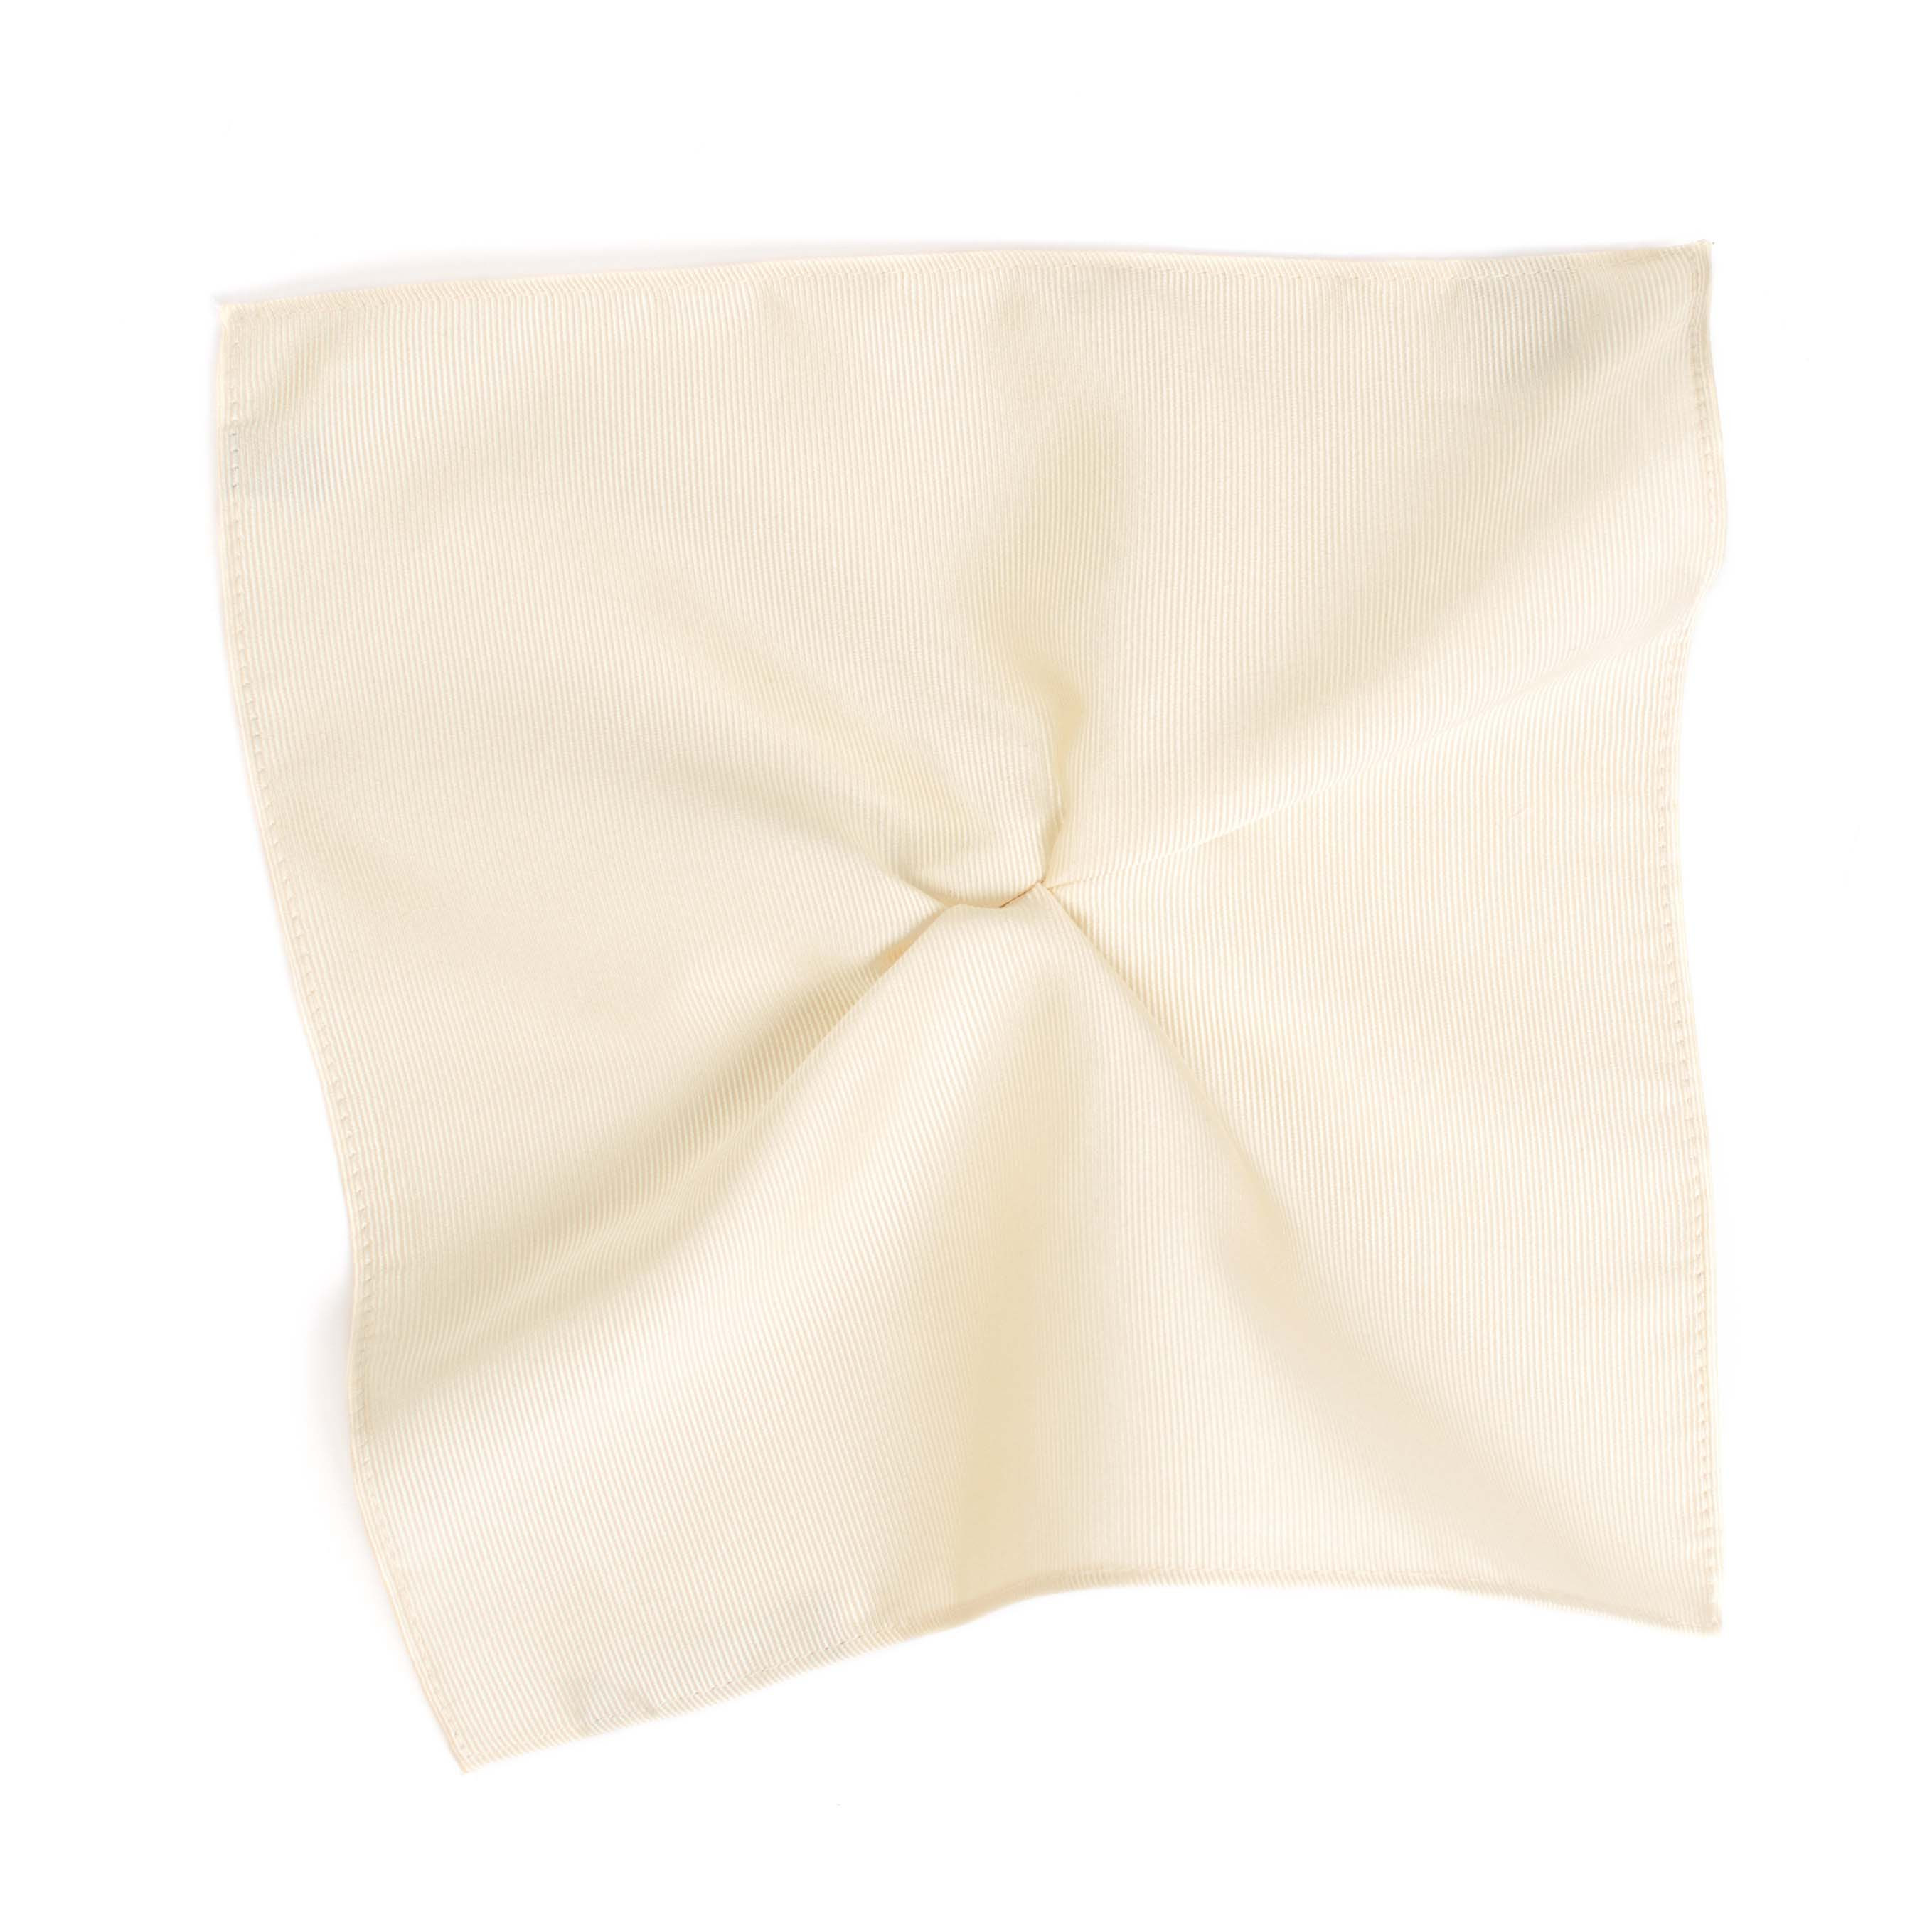 Classic ivory ribbed pocket square